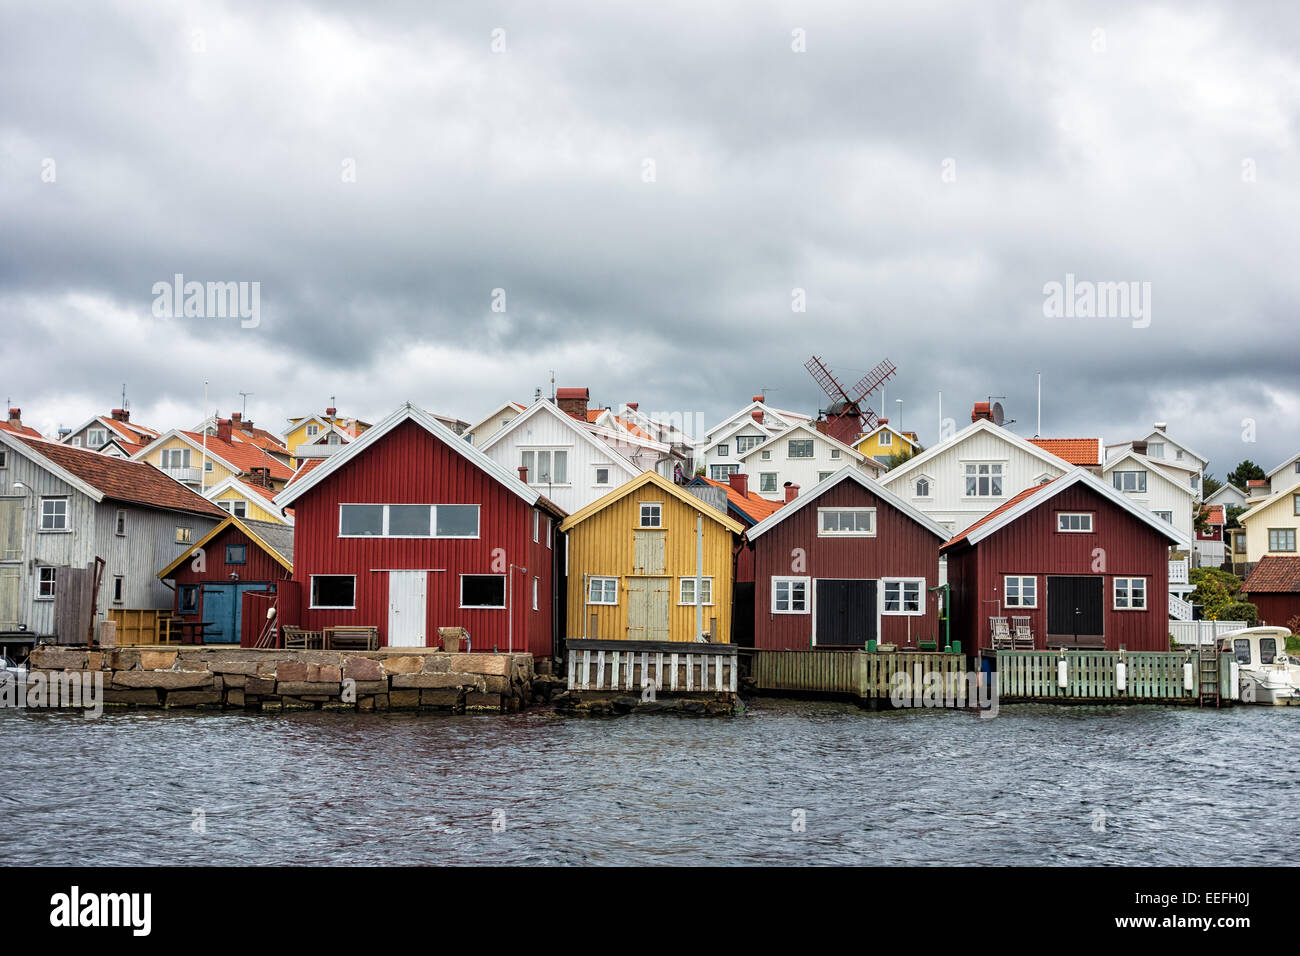 Wooden houses on the island Orust in Sweden - Stock Image